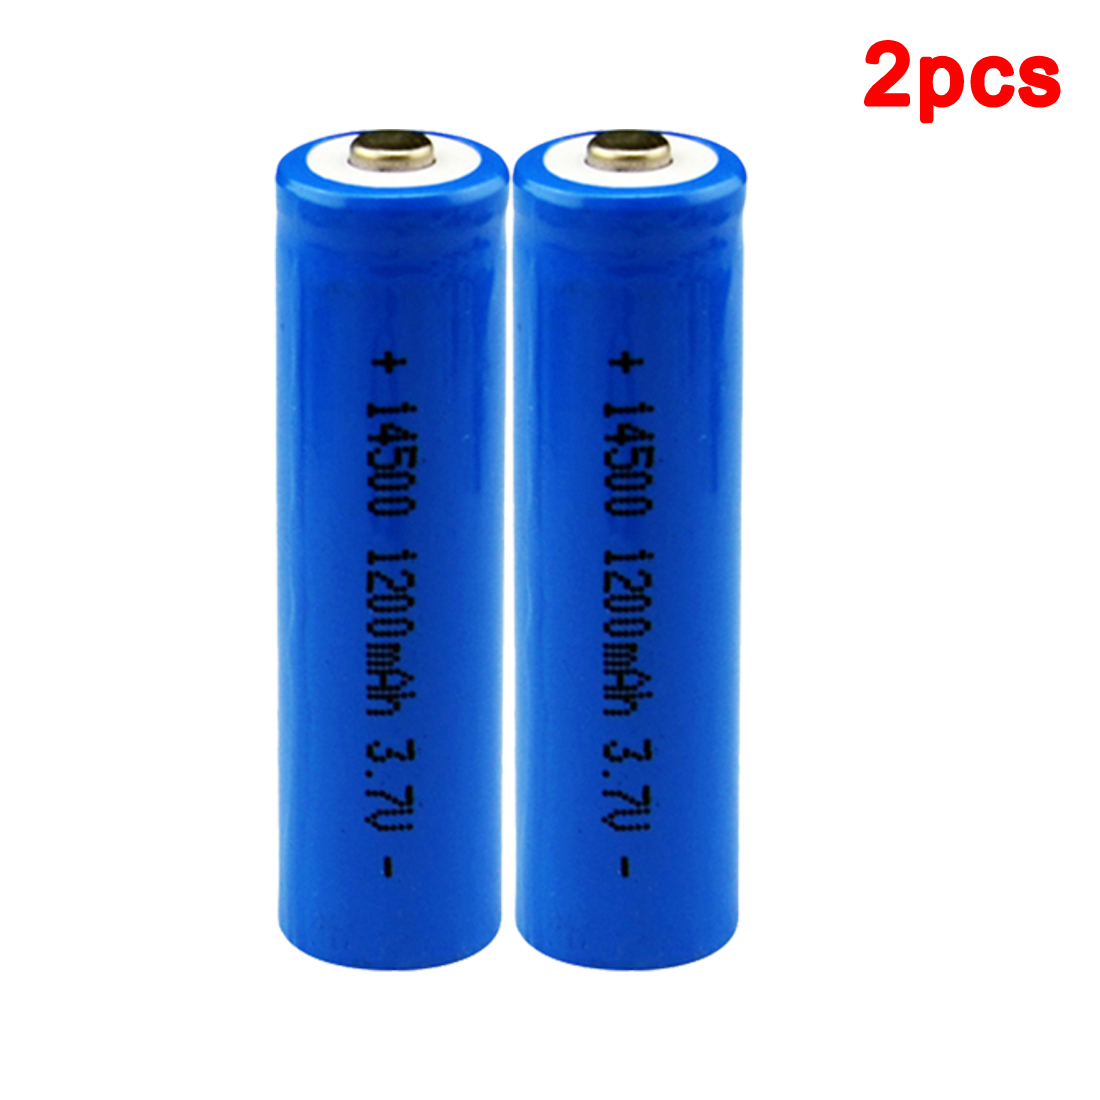 Centechia 2 pcs High Capacitance 14500 Battery 3.7V 1300mAh Rechargeable Battery for Led Flashlight Batery Battery Newest